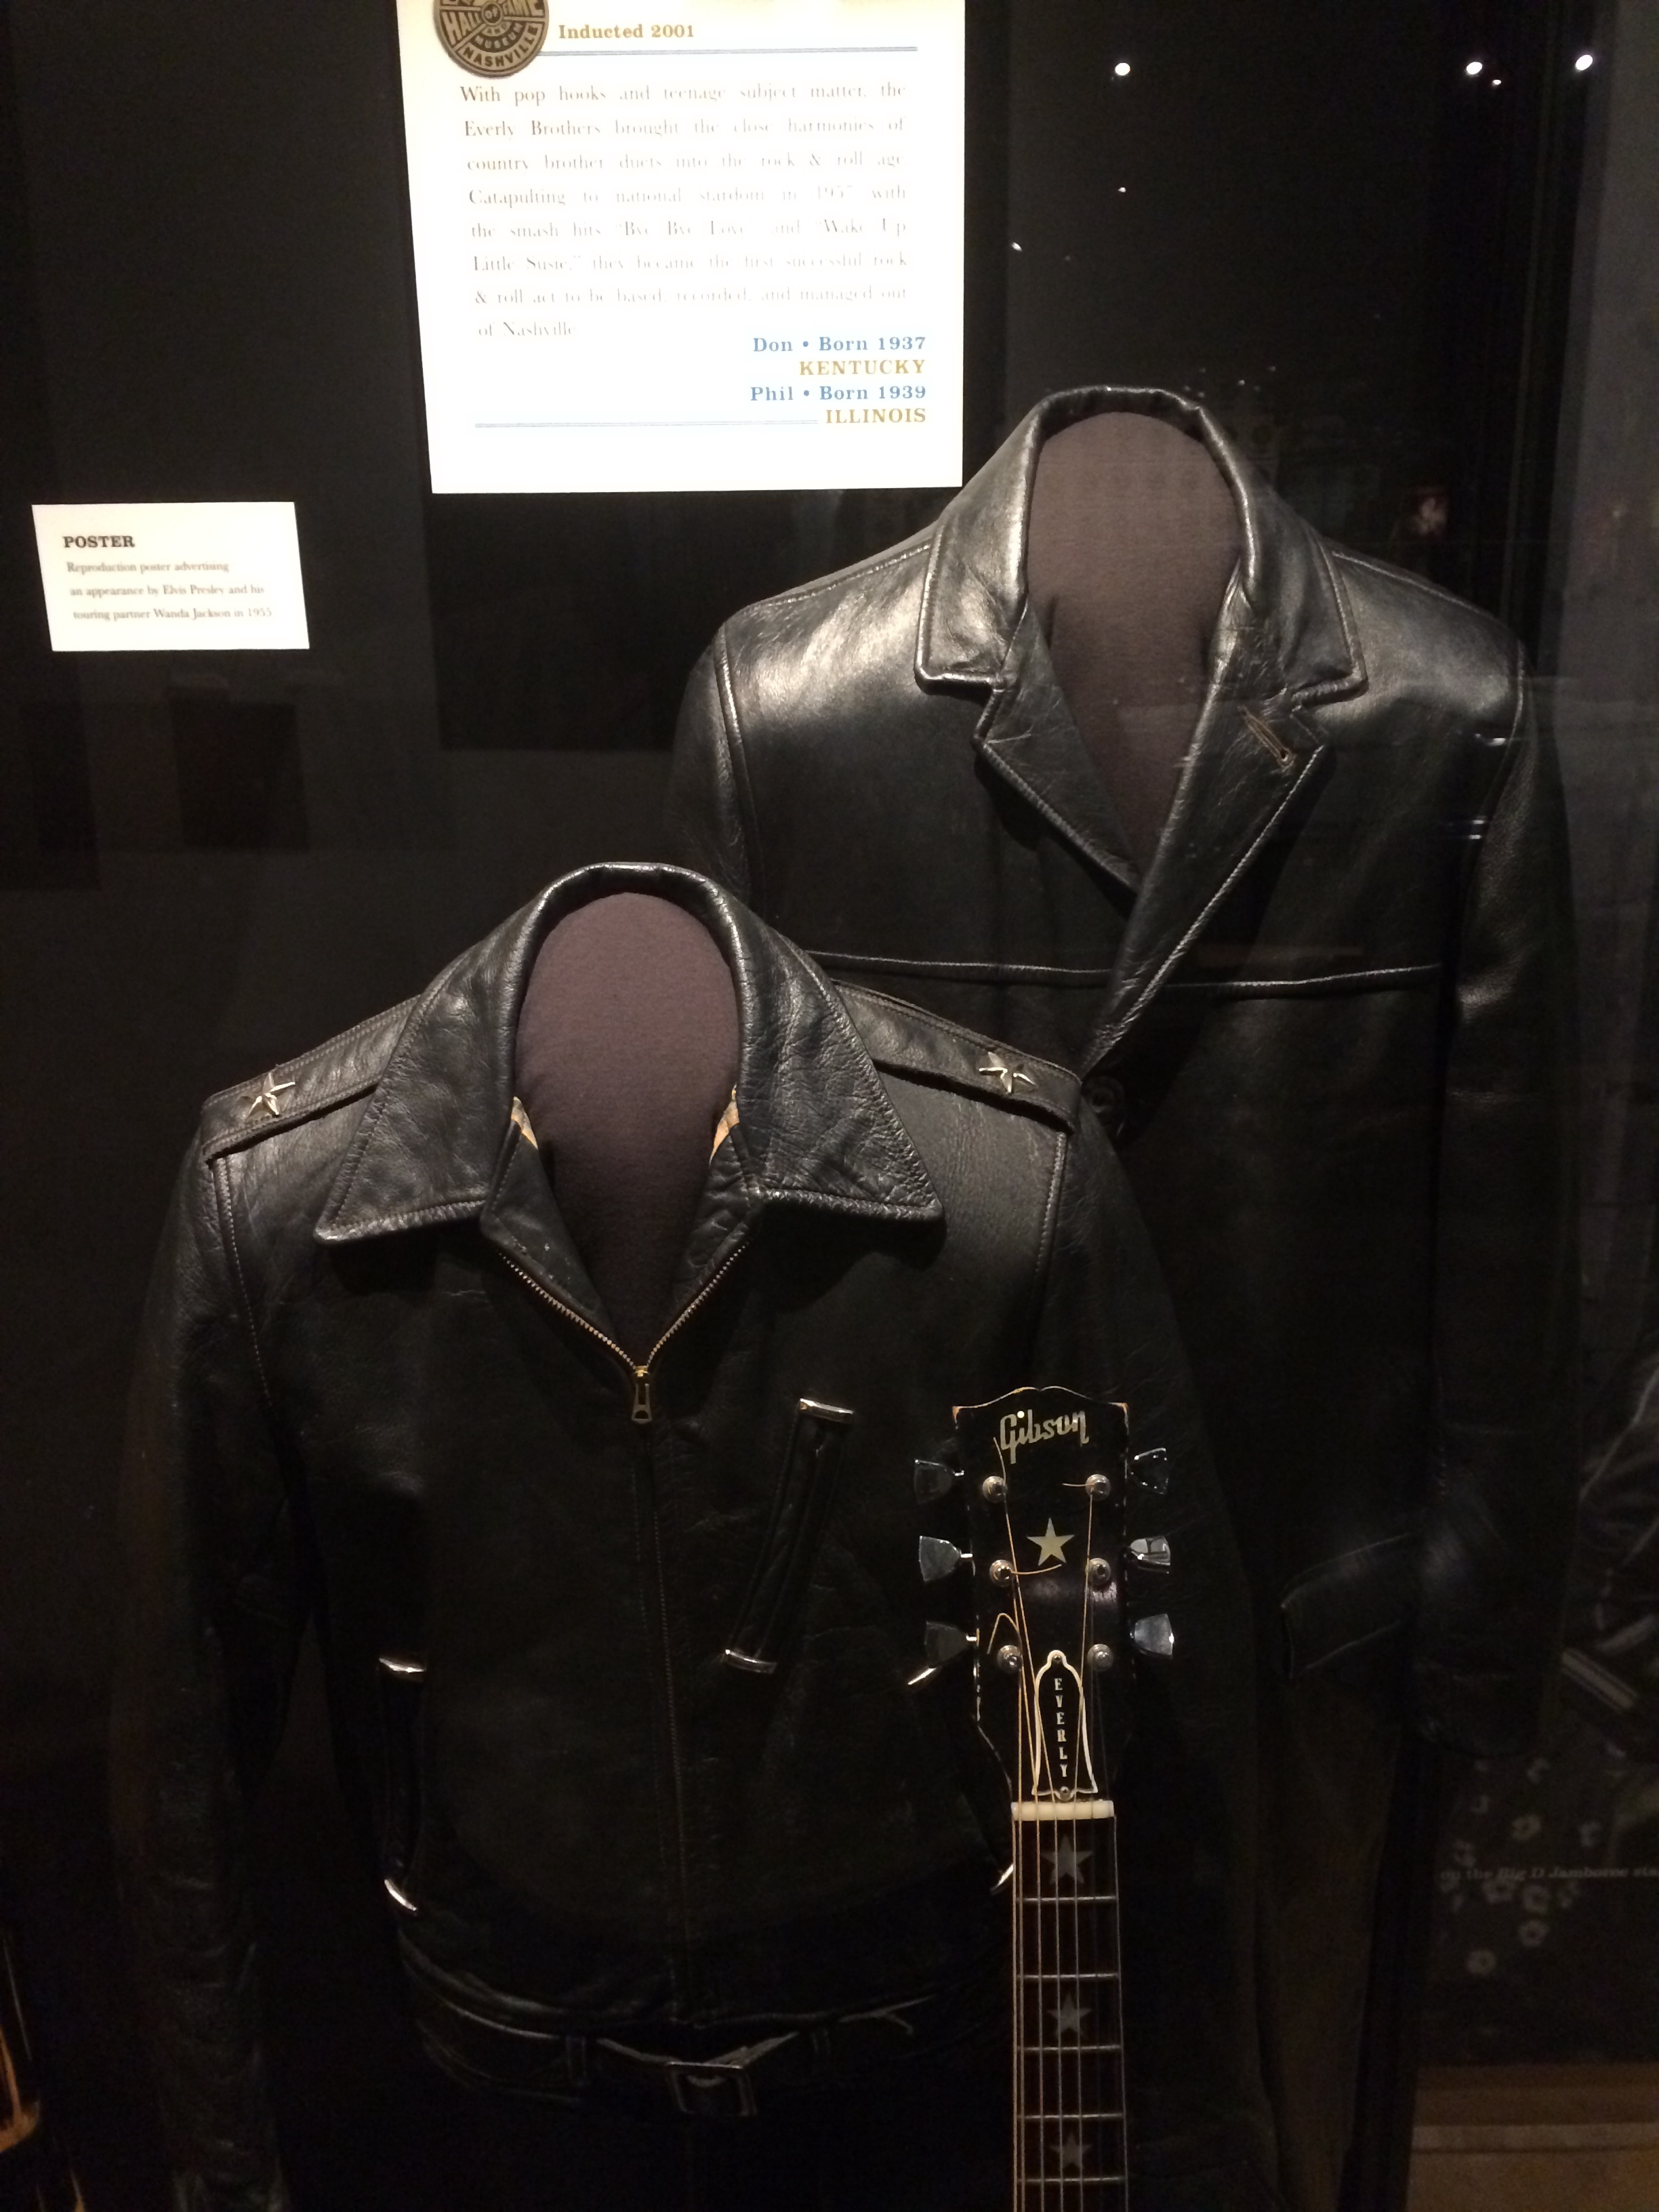 The Everly Brothers (jackets)